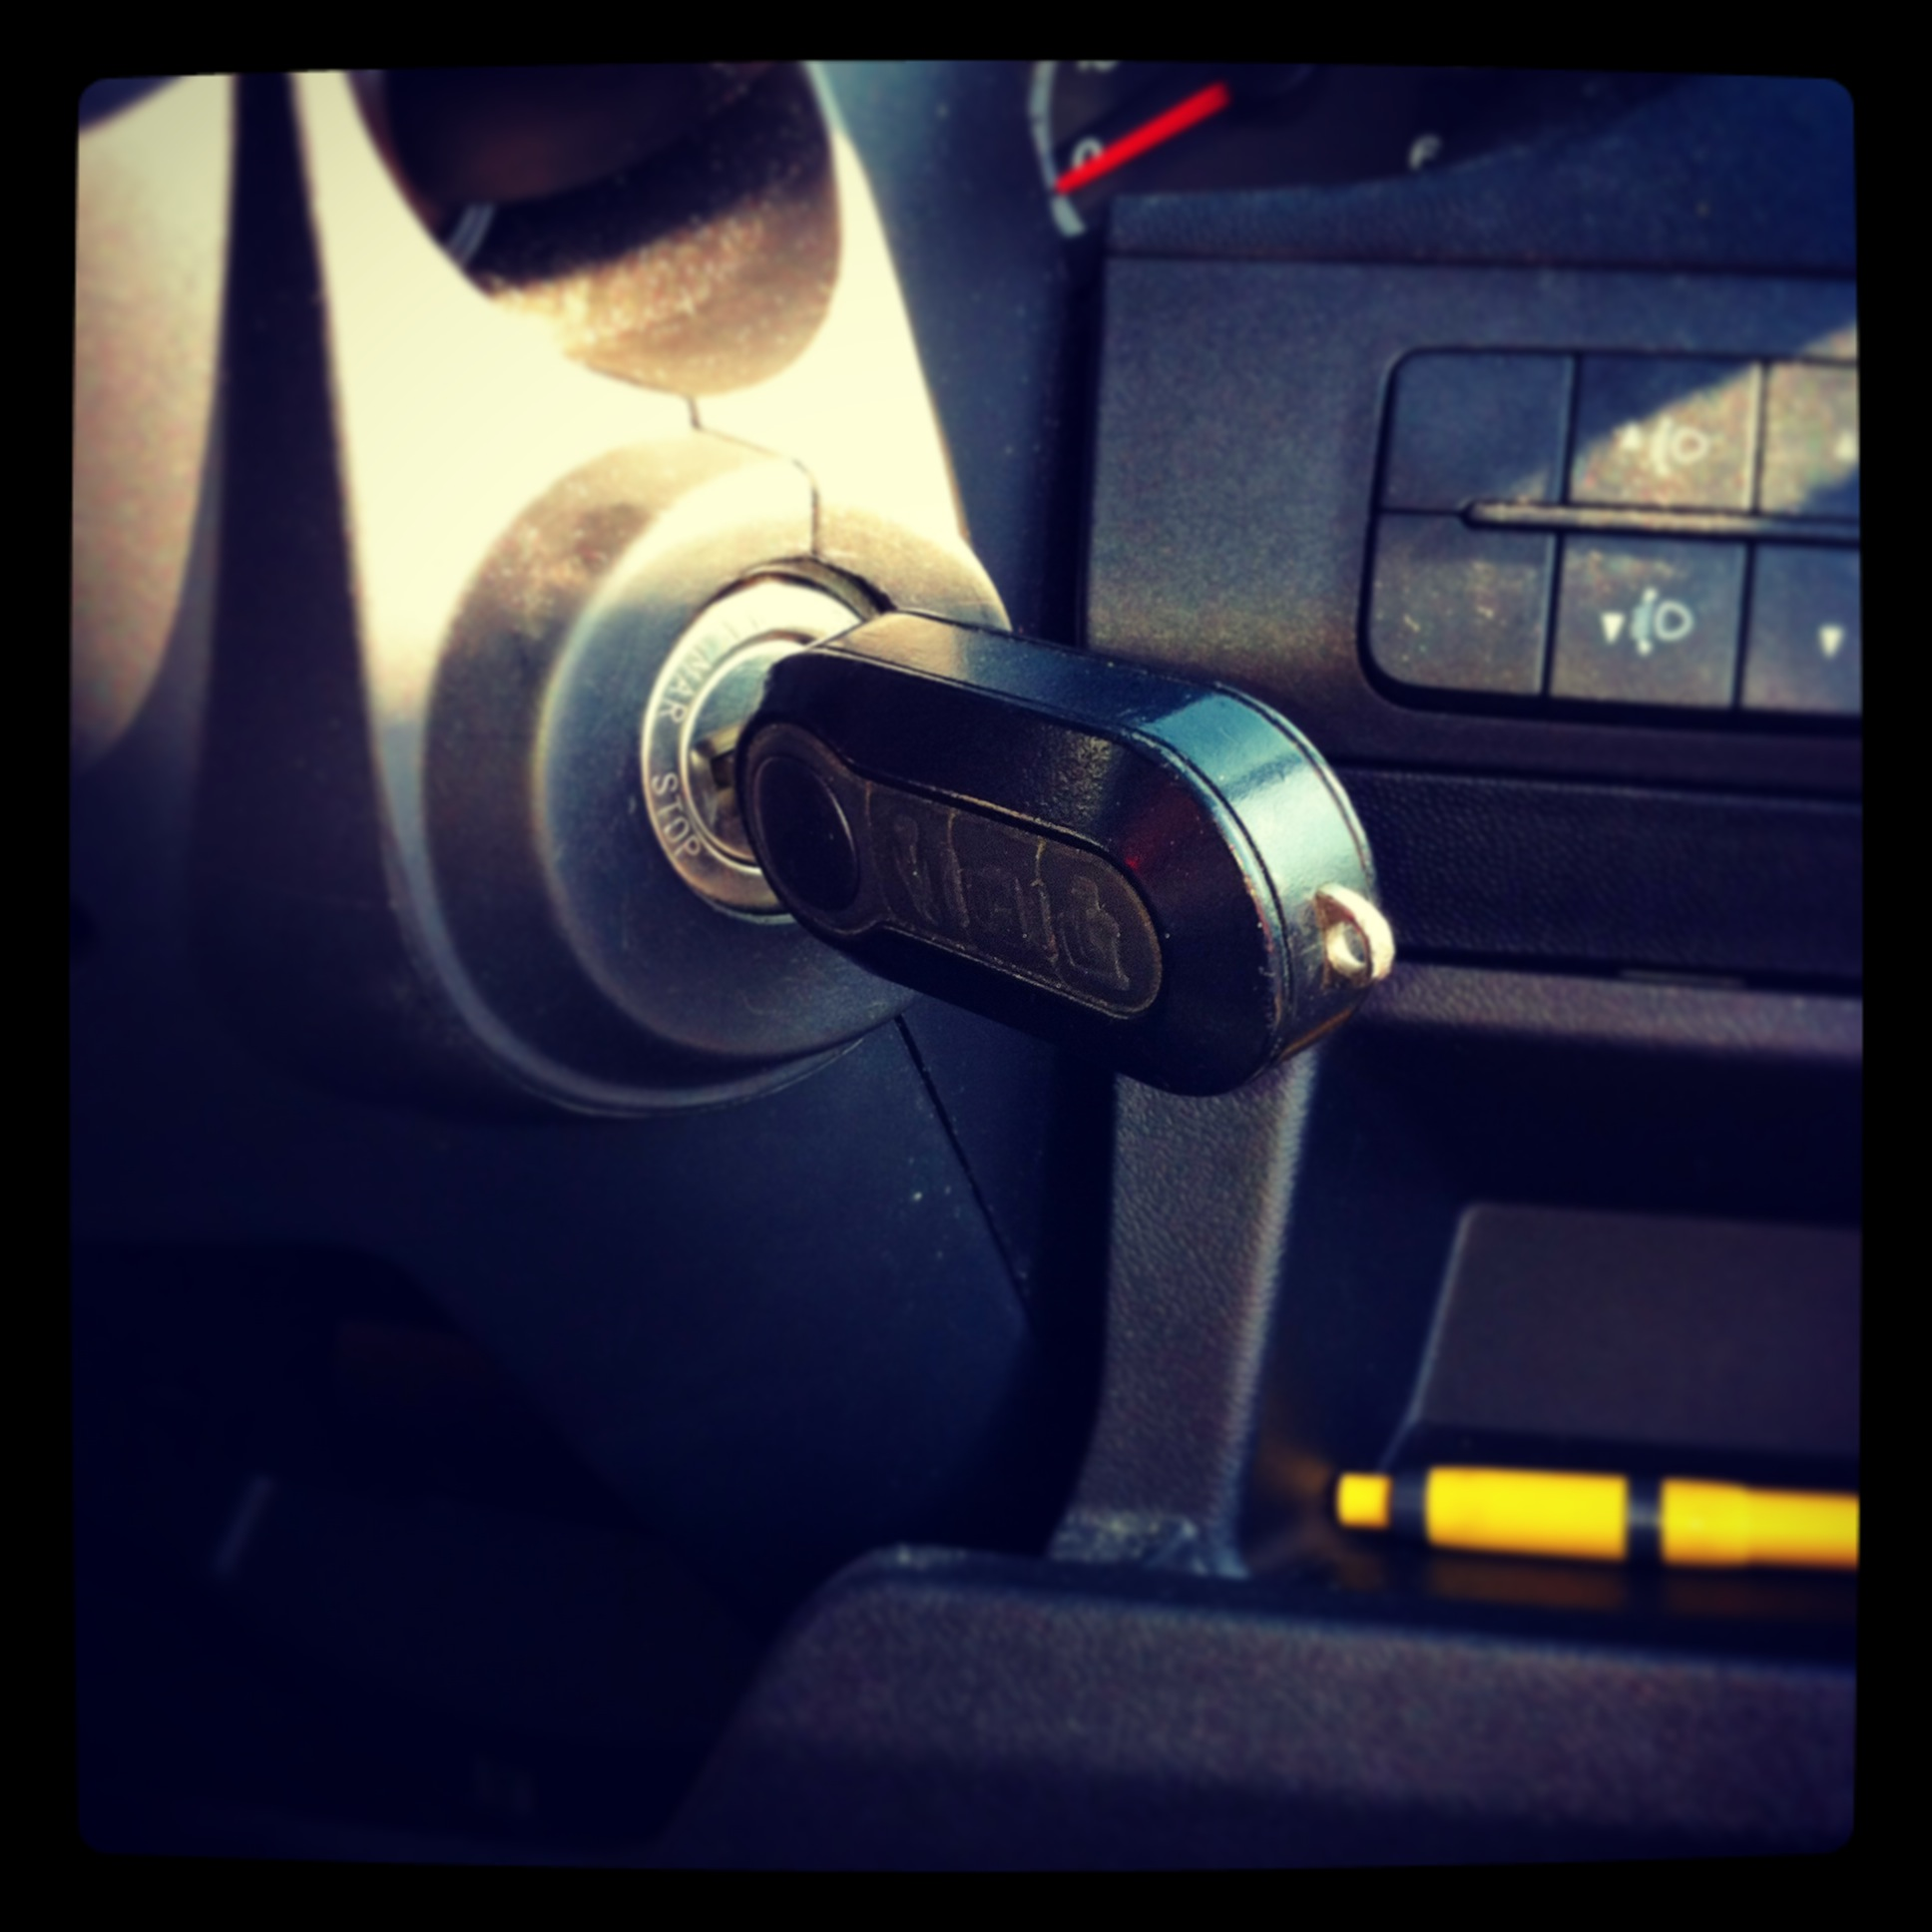 vehicle keys